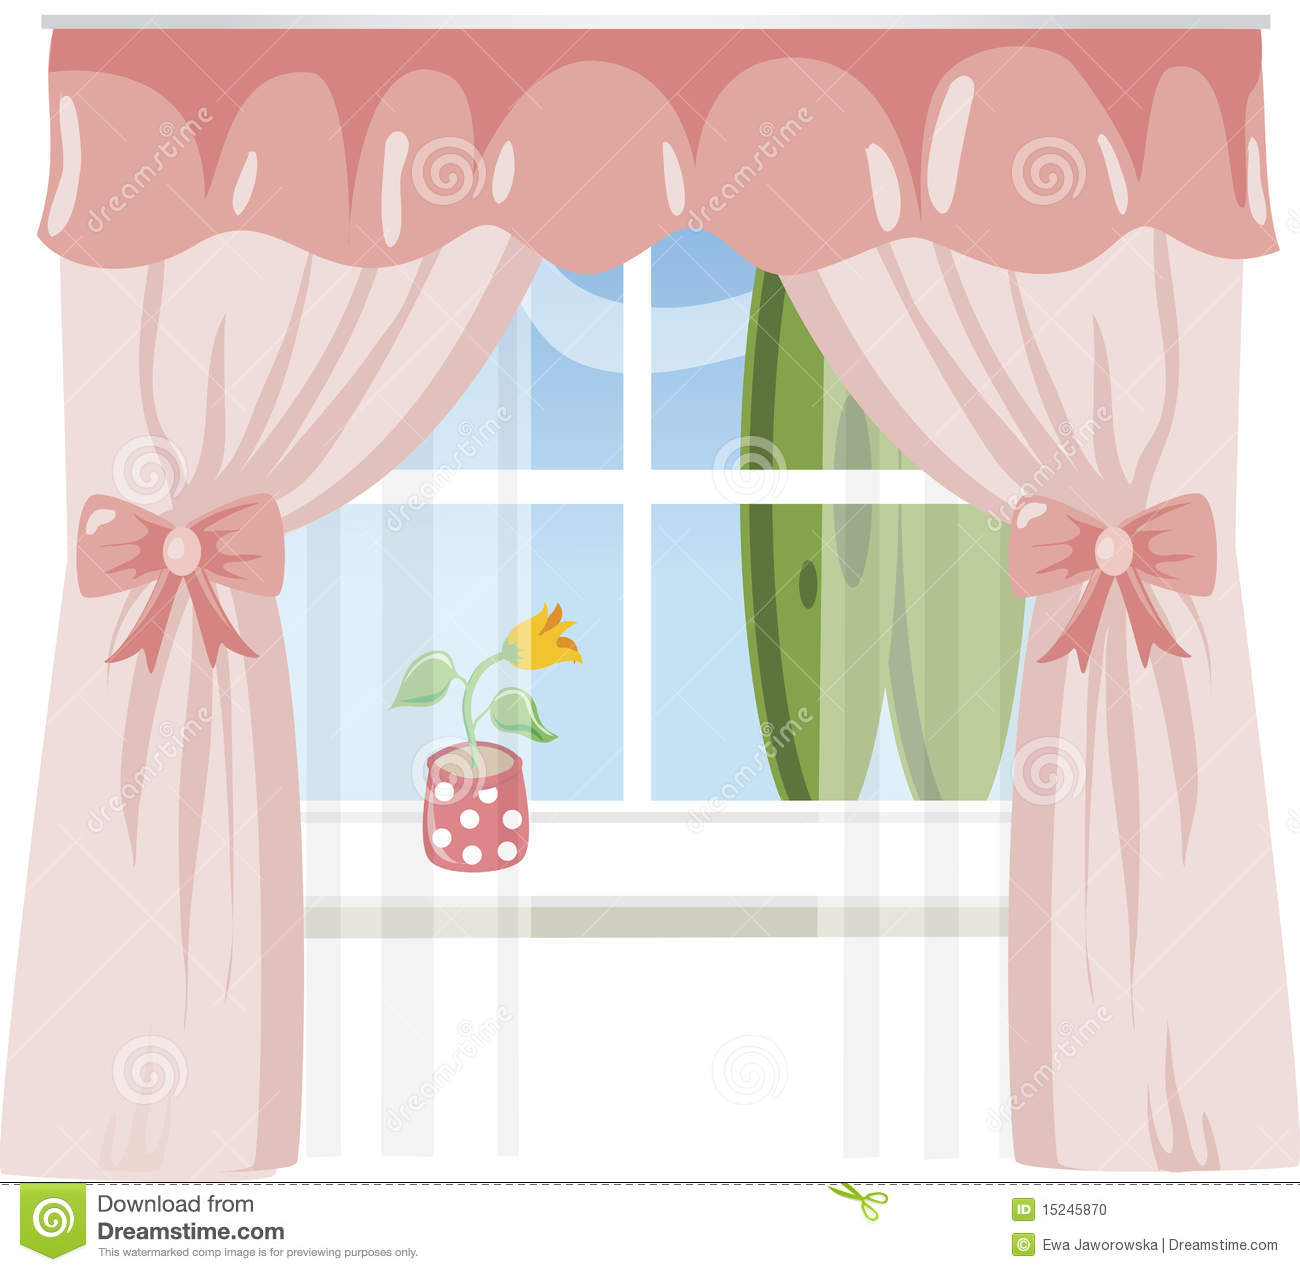 Window Pink Curtains Stock Illustrations – 160 Window Pink ... for Window With Curtains Illustration  131fsj